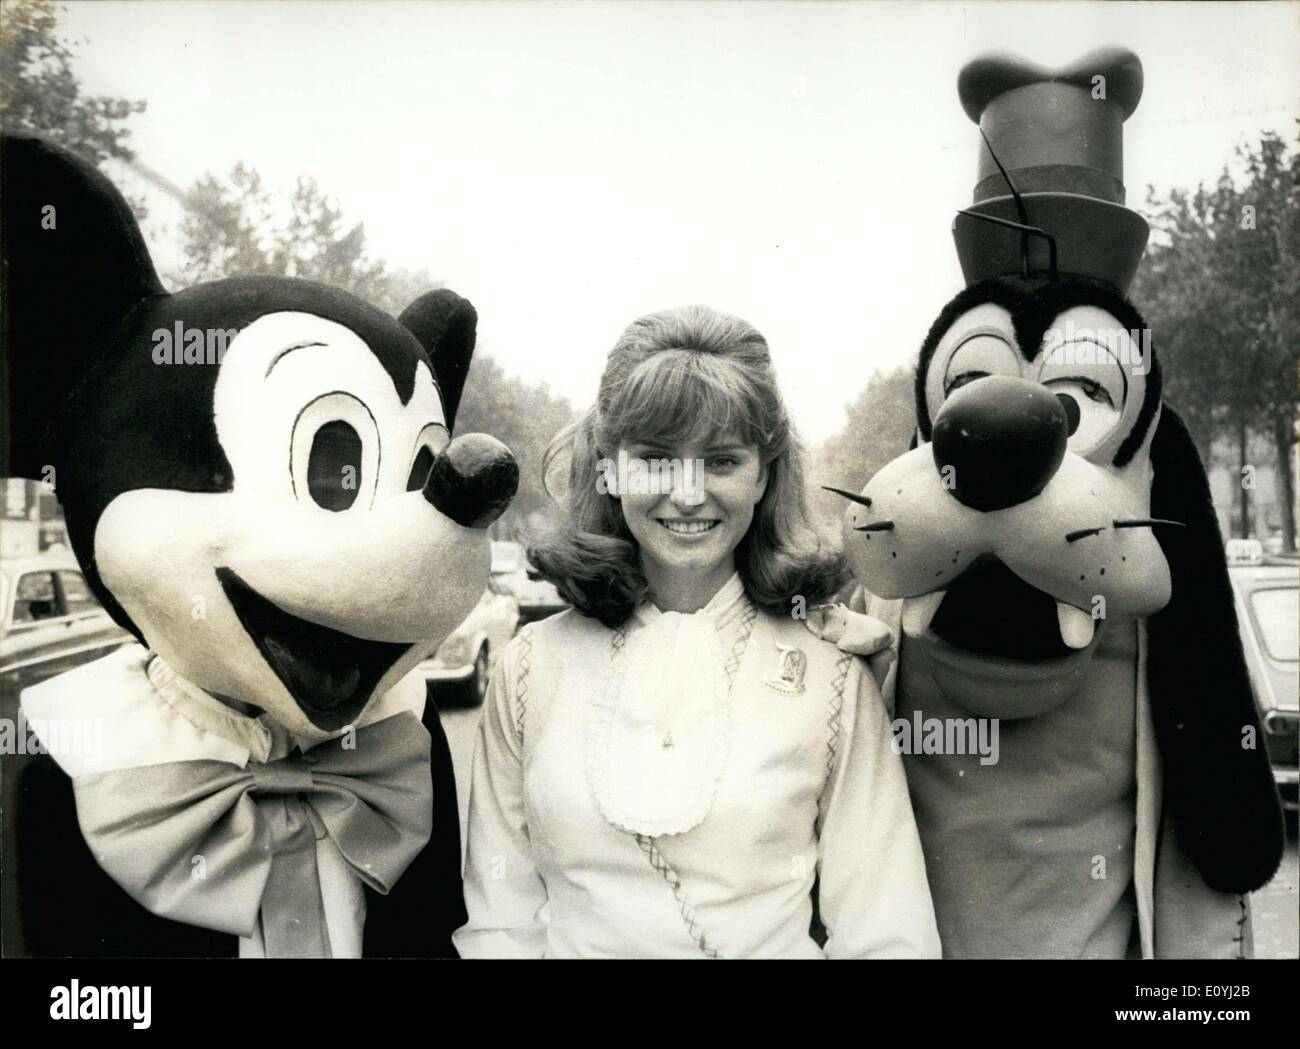 Jun. 18, 1970 - Cathy Birk with Mickey and Goofy in Paris - Stock Image